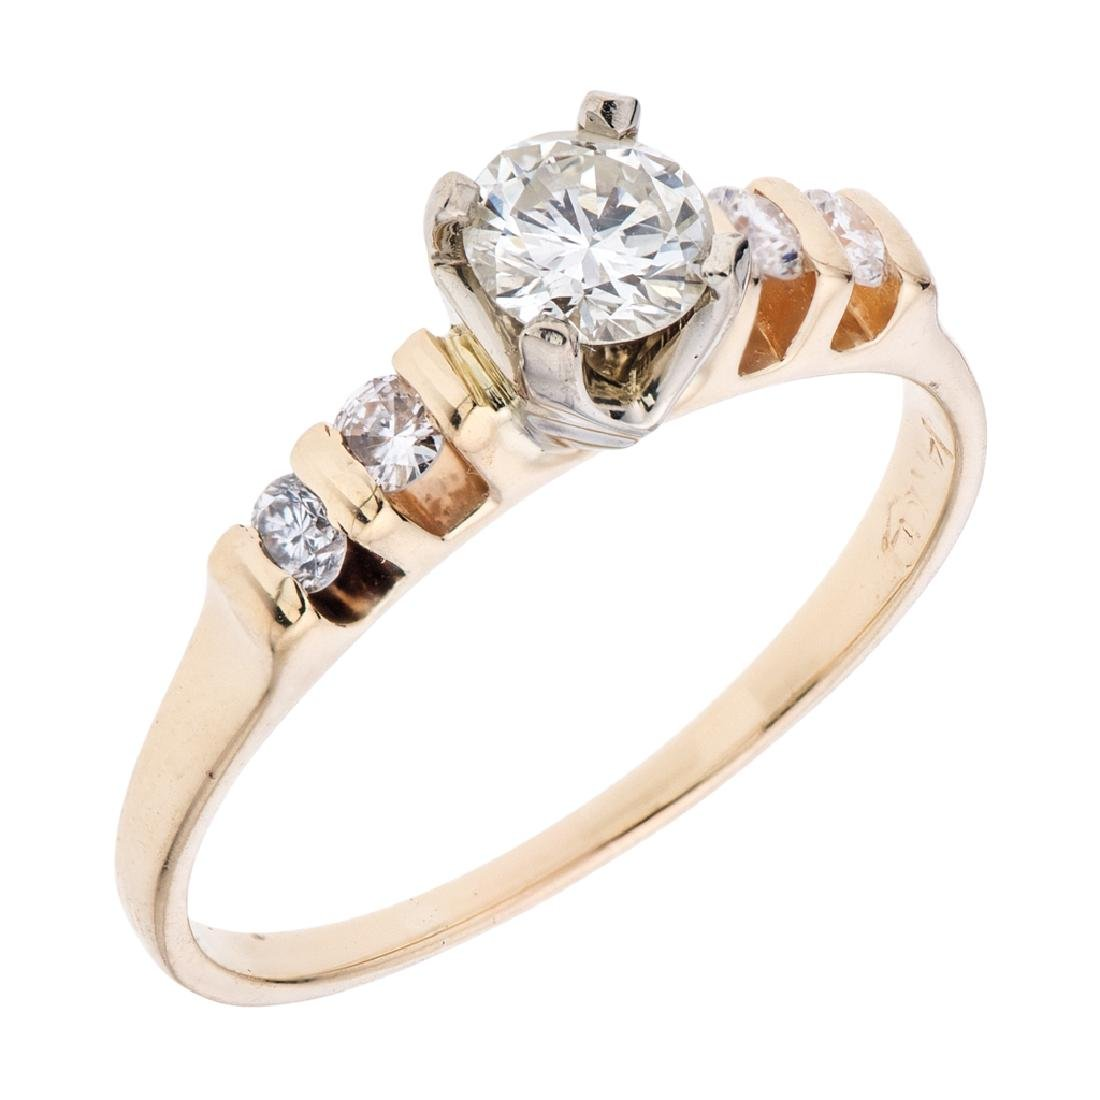 A 14K yellow gold ring with 5 brilliant cut diamonds